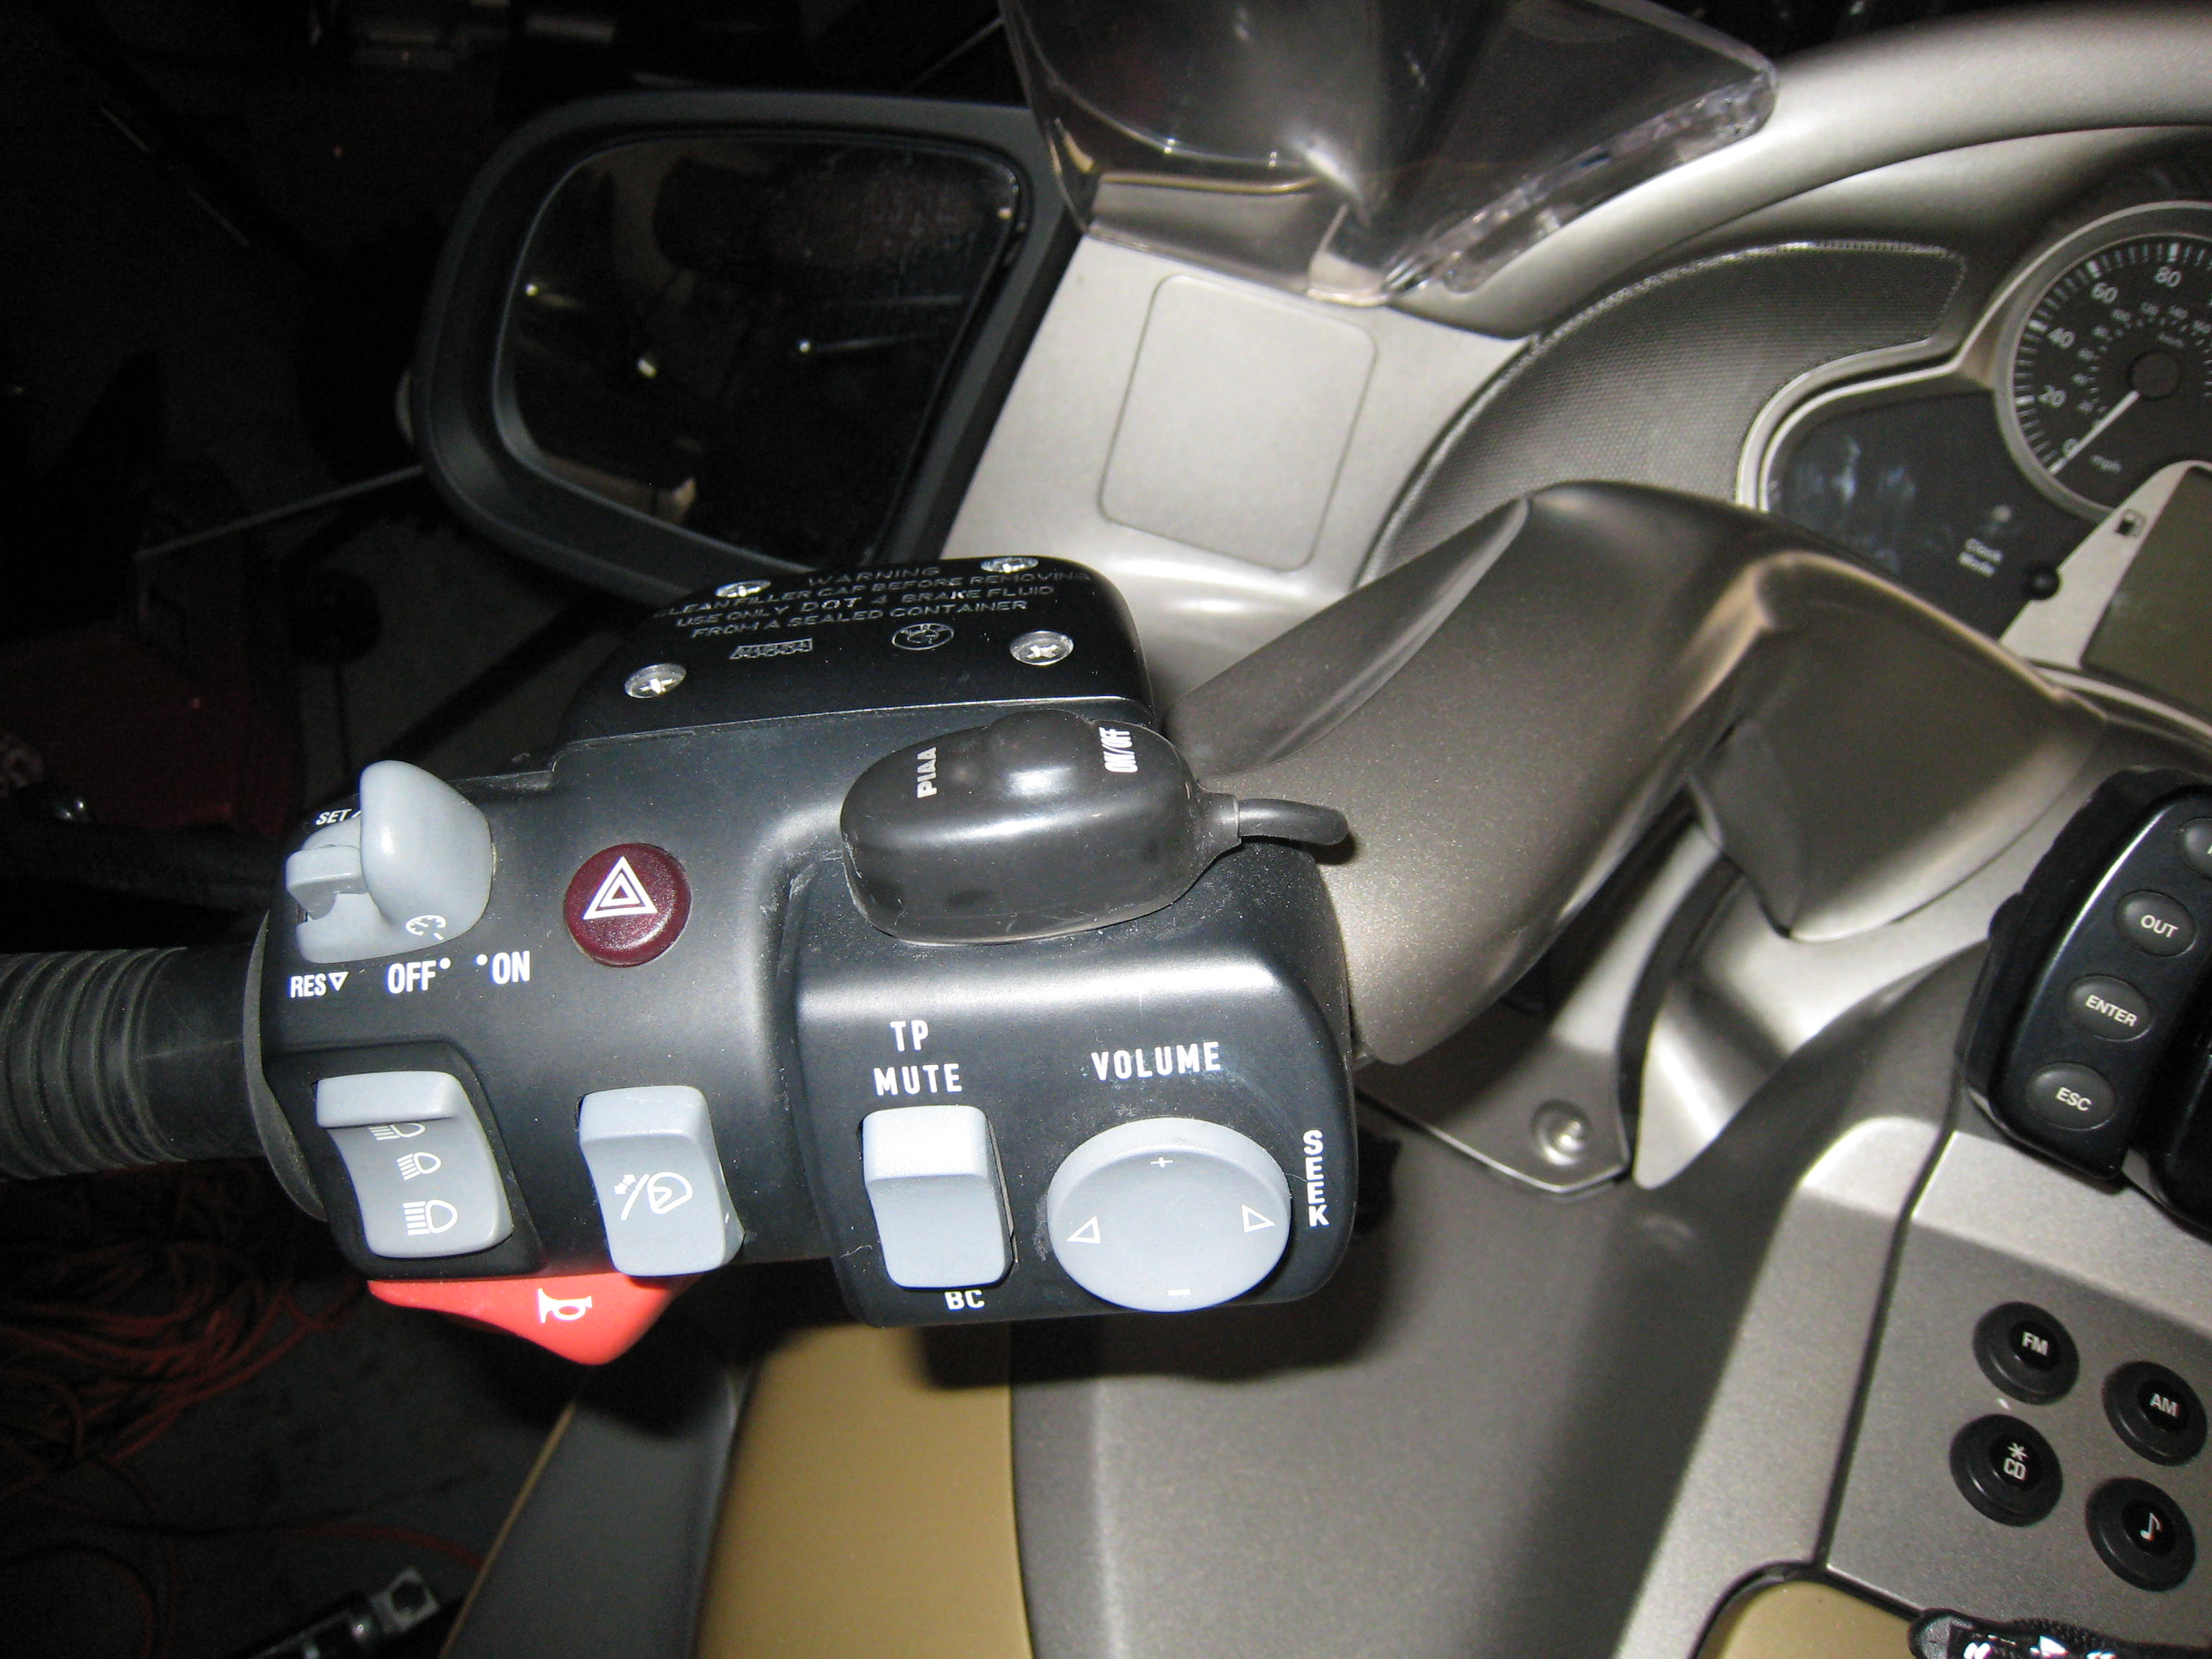 piaa 1100x mounting on off switch bmw luxury touring community click image for larger version 0013 jpg views 1009 size 680 4